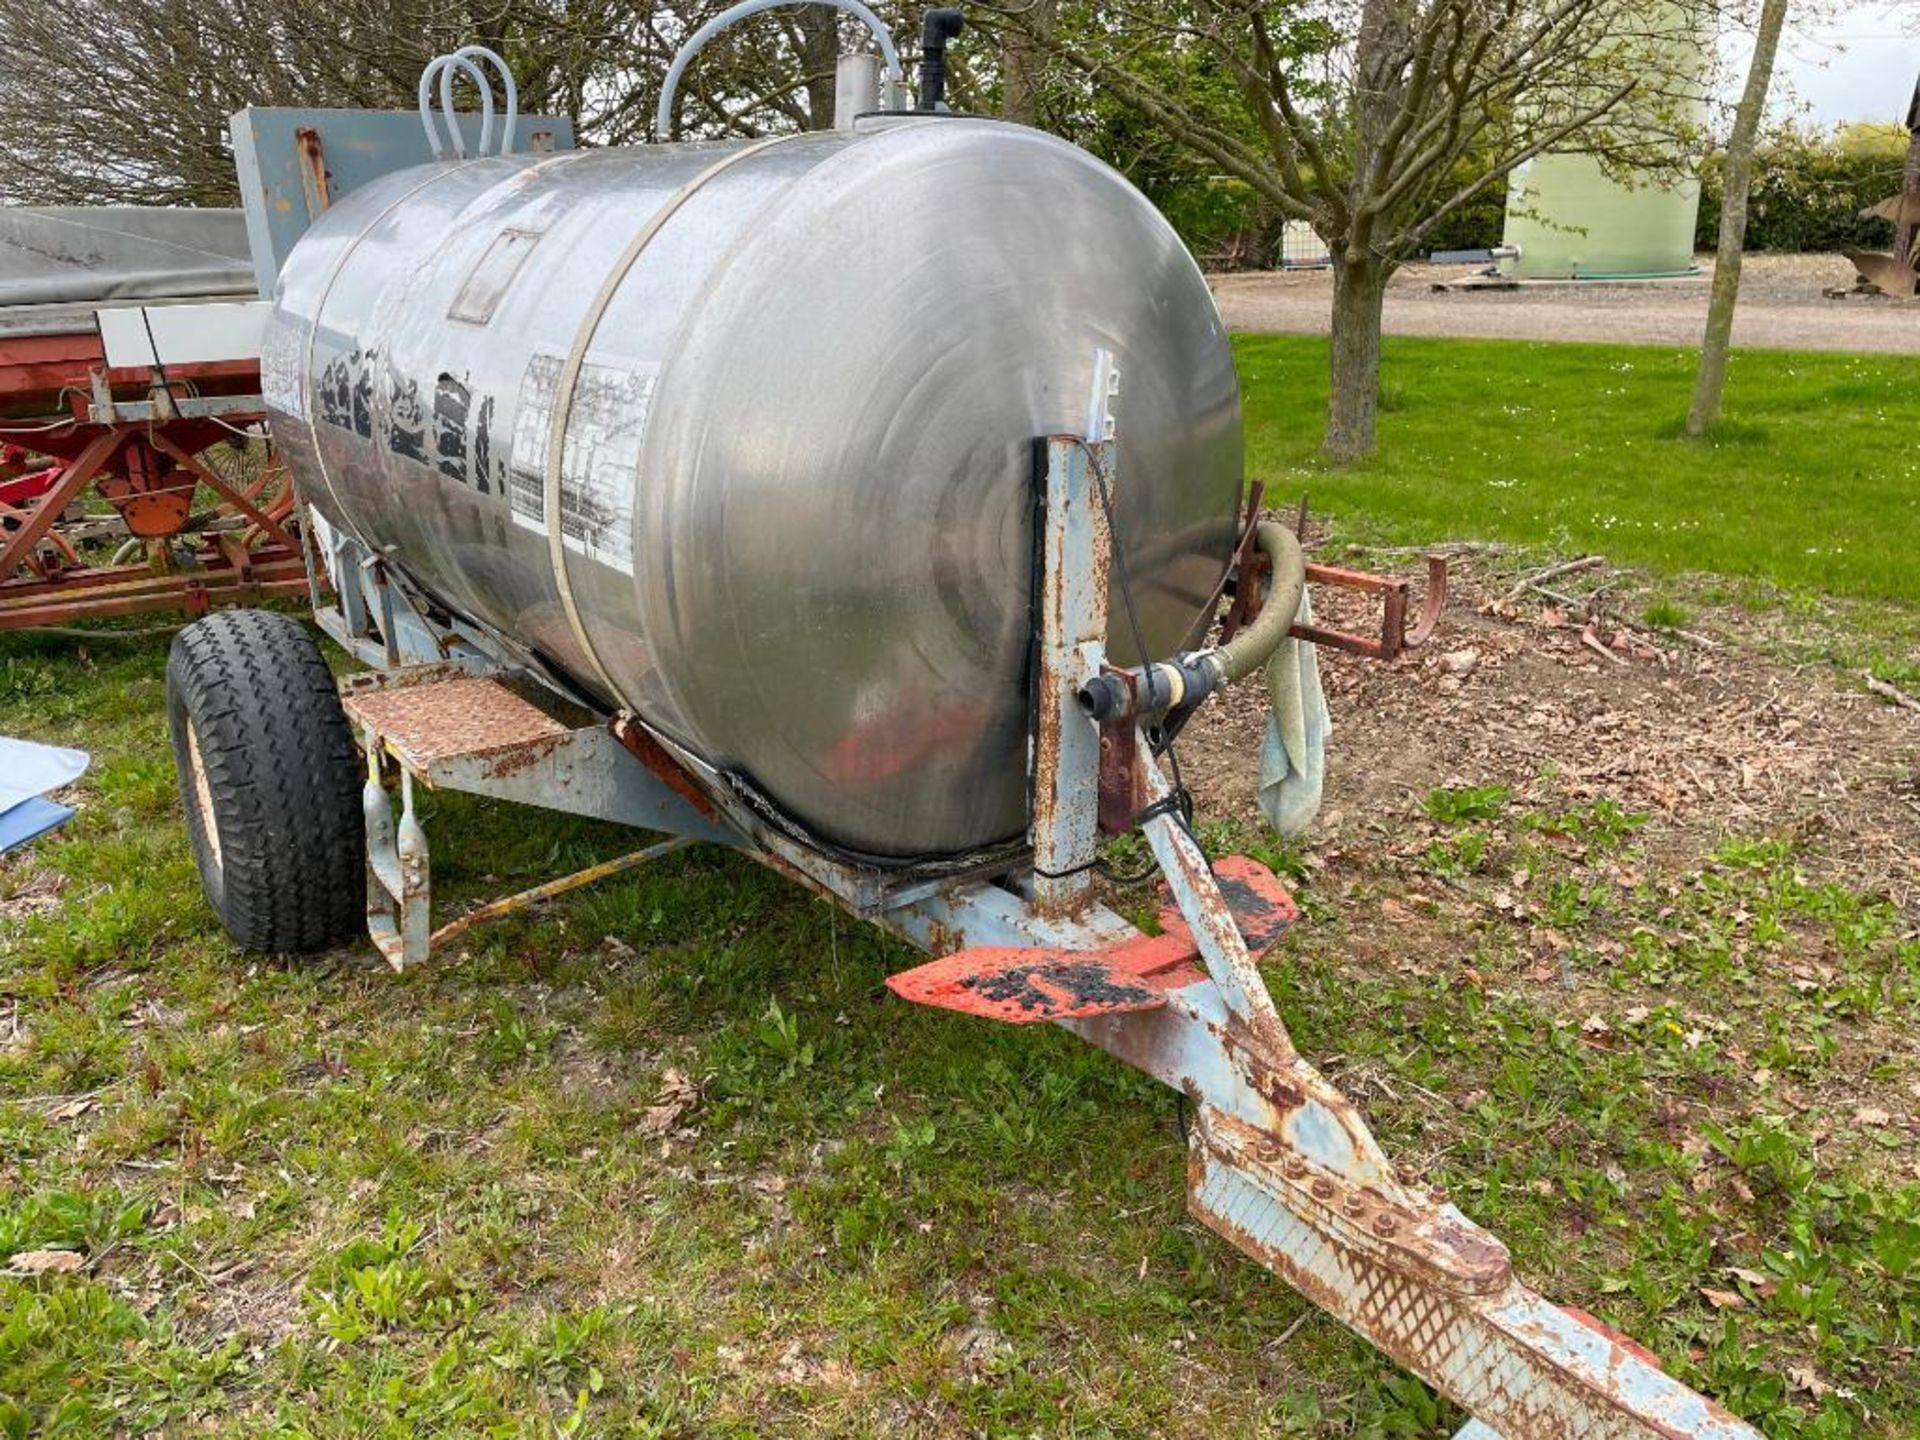 Chafer stainless steel tank, trailed single axle on 11.5/80-15.3 wheels and tyres with Honda pump - Image 4 of 4